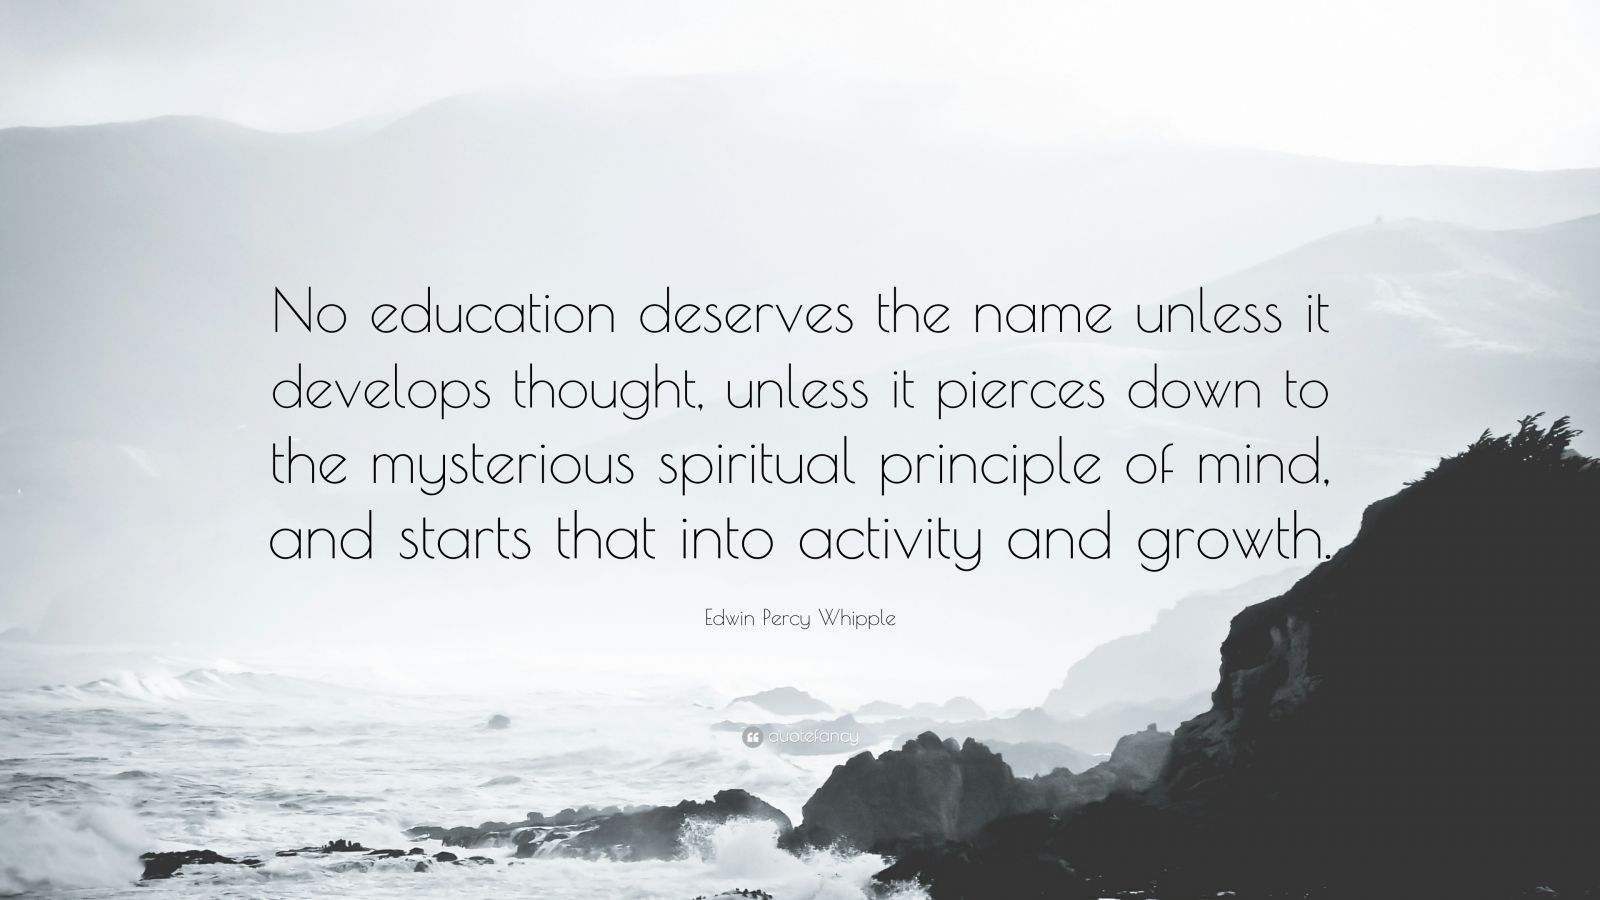 """Edwin Percy Whipple Quote: """"No education deserves the name unless it develops thought, unless it pierces down to the mysterious spiritual principle of mind, and starts that into activity and growth."""""""